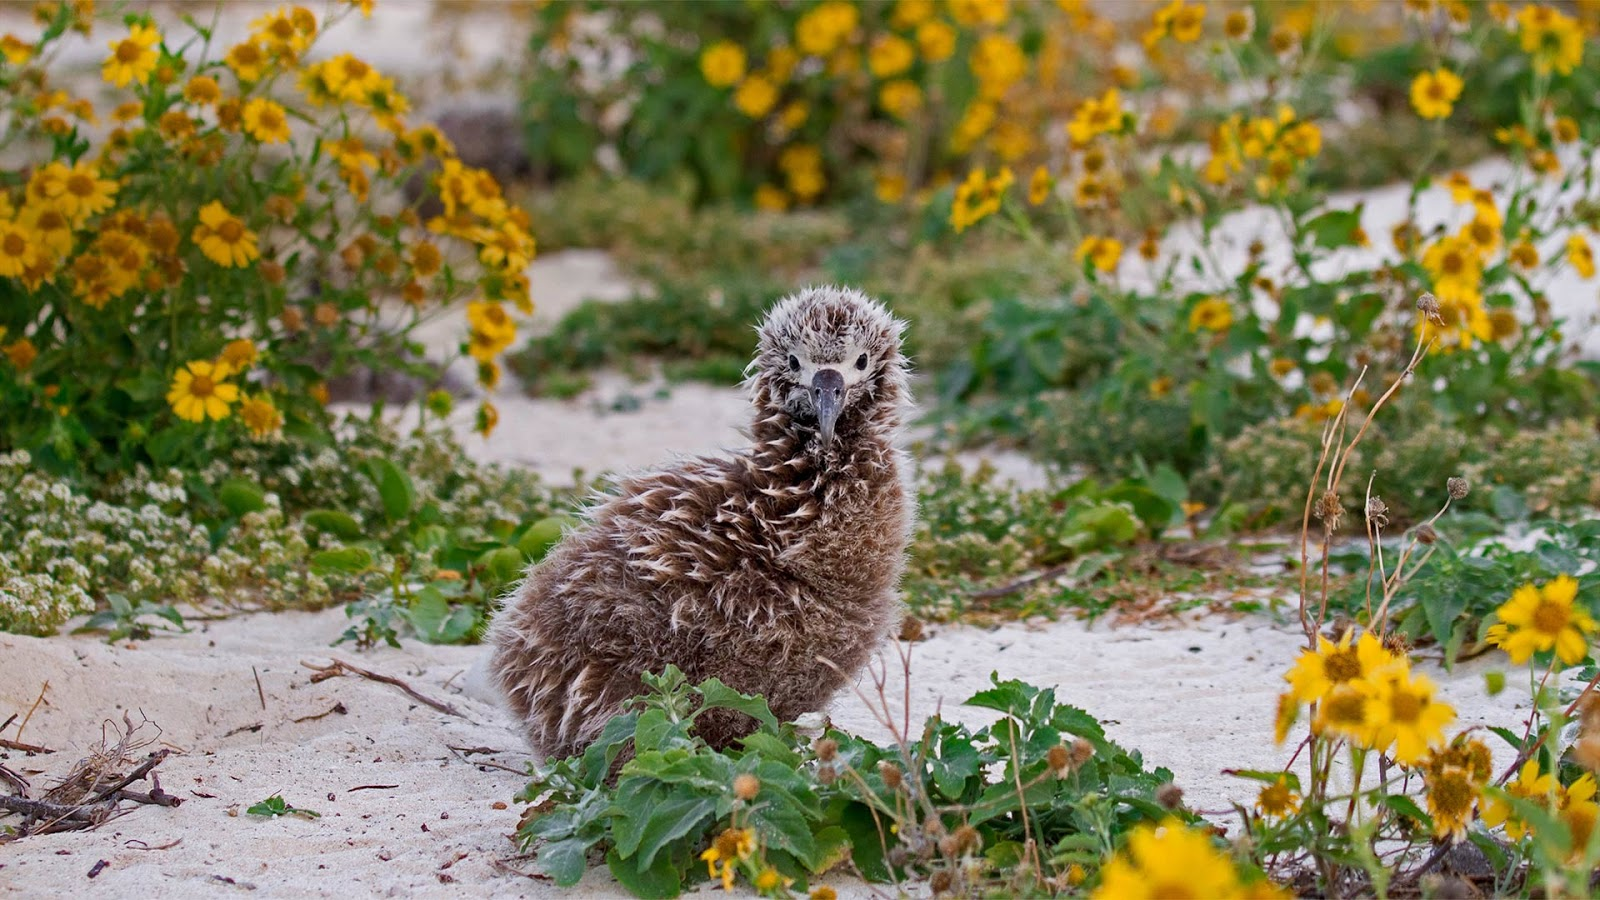 Laysan albatross chick on Midway Atoll, Hawaiian Leeward Islands © Jaymi Heimbuch/Minden Pictures